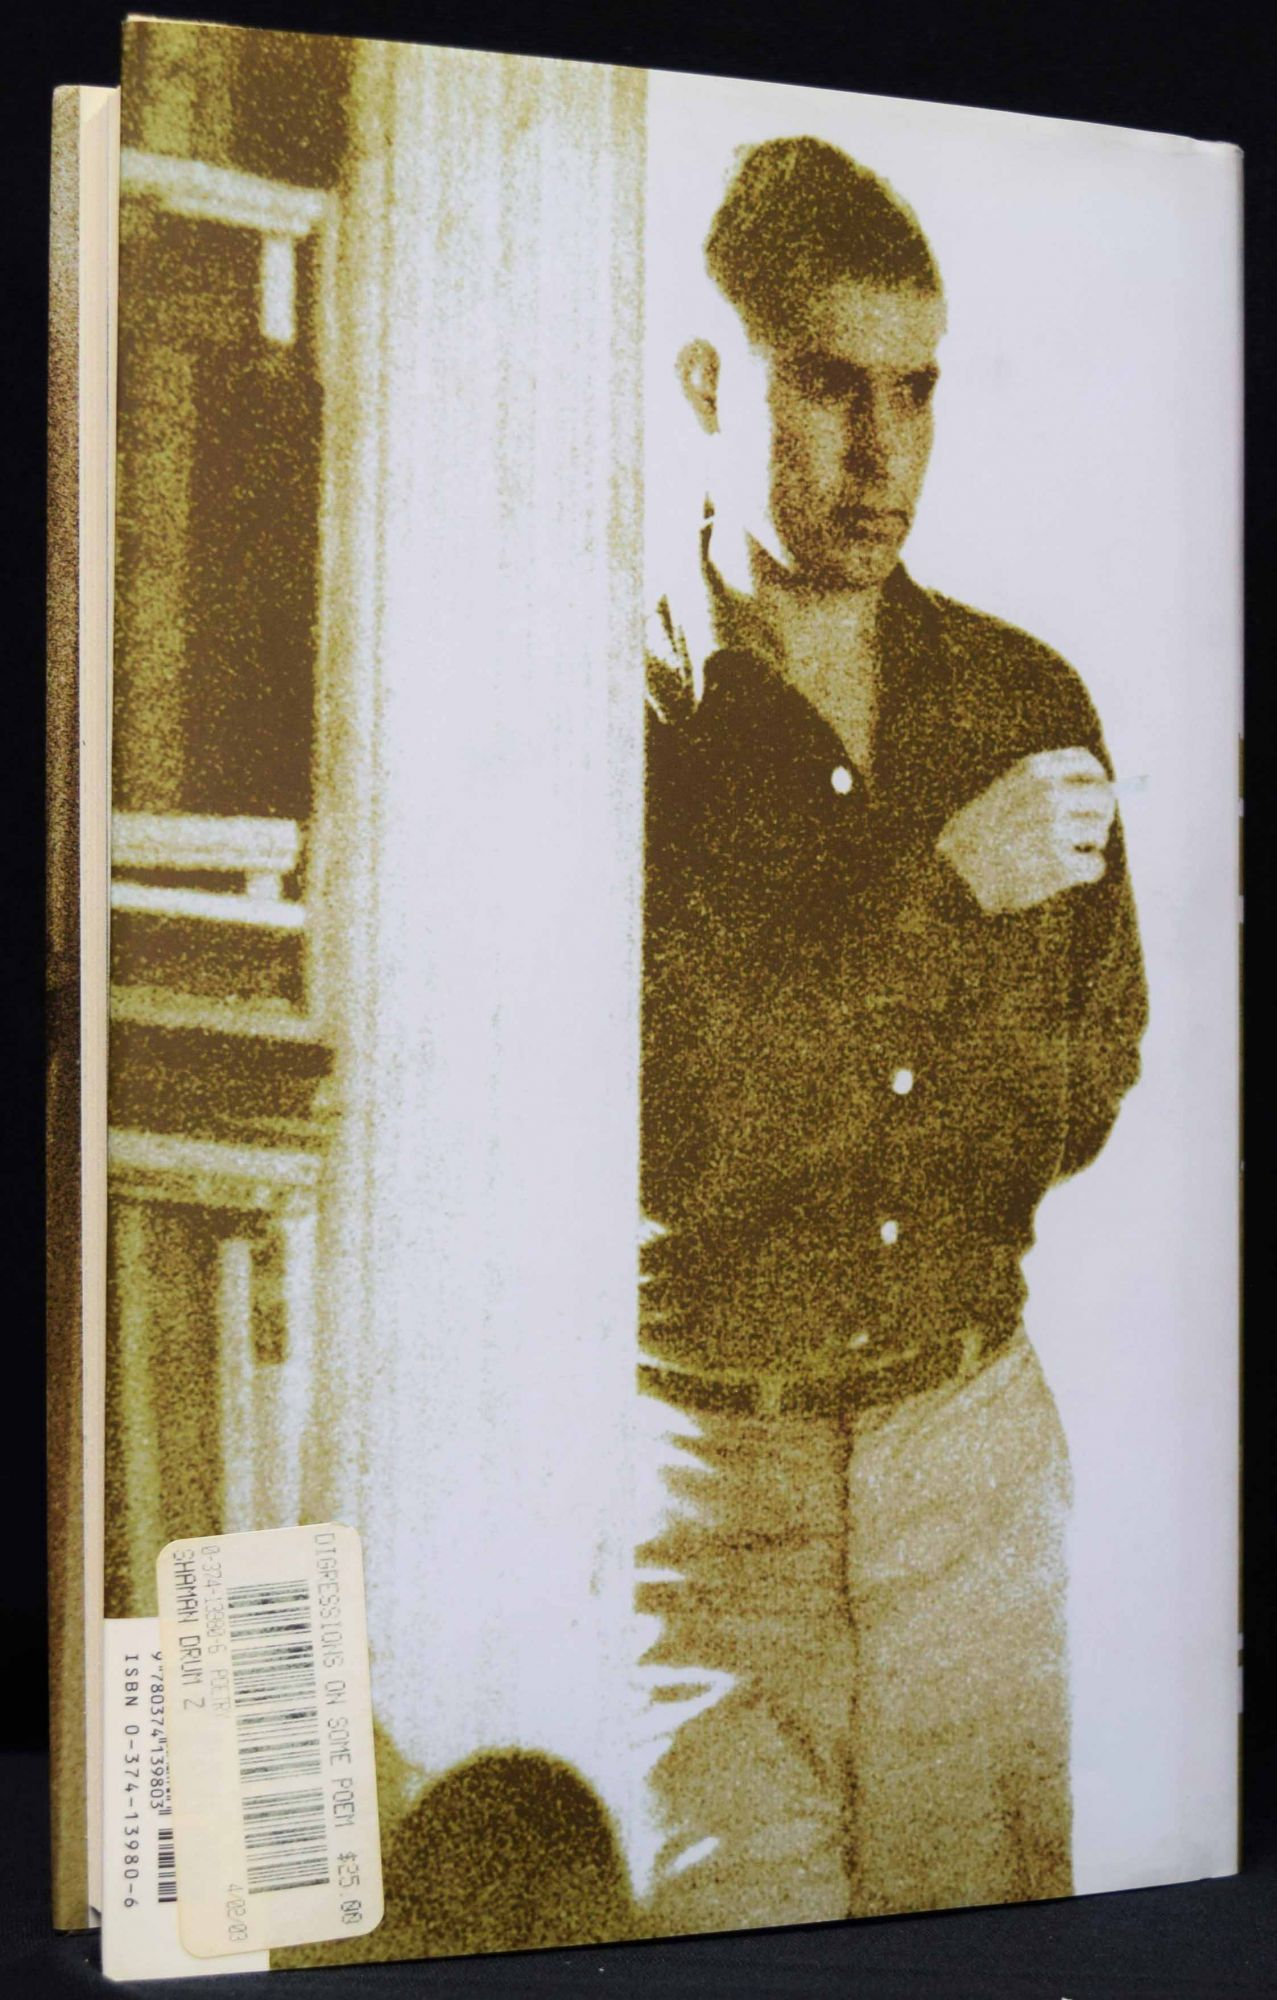 Digressions on Some Poems by Frank OHara: A Memoir